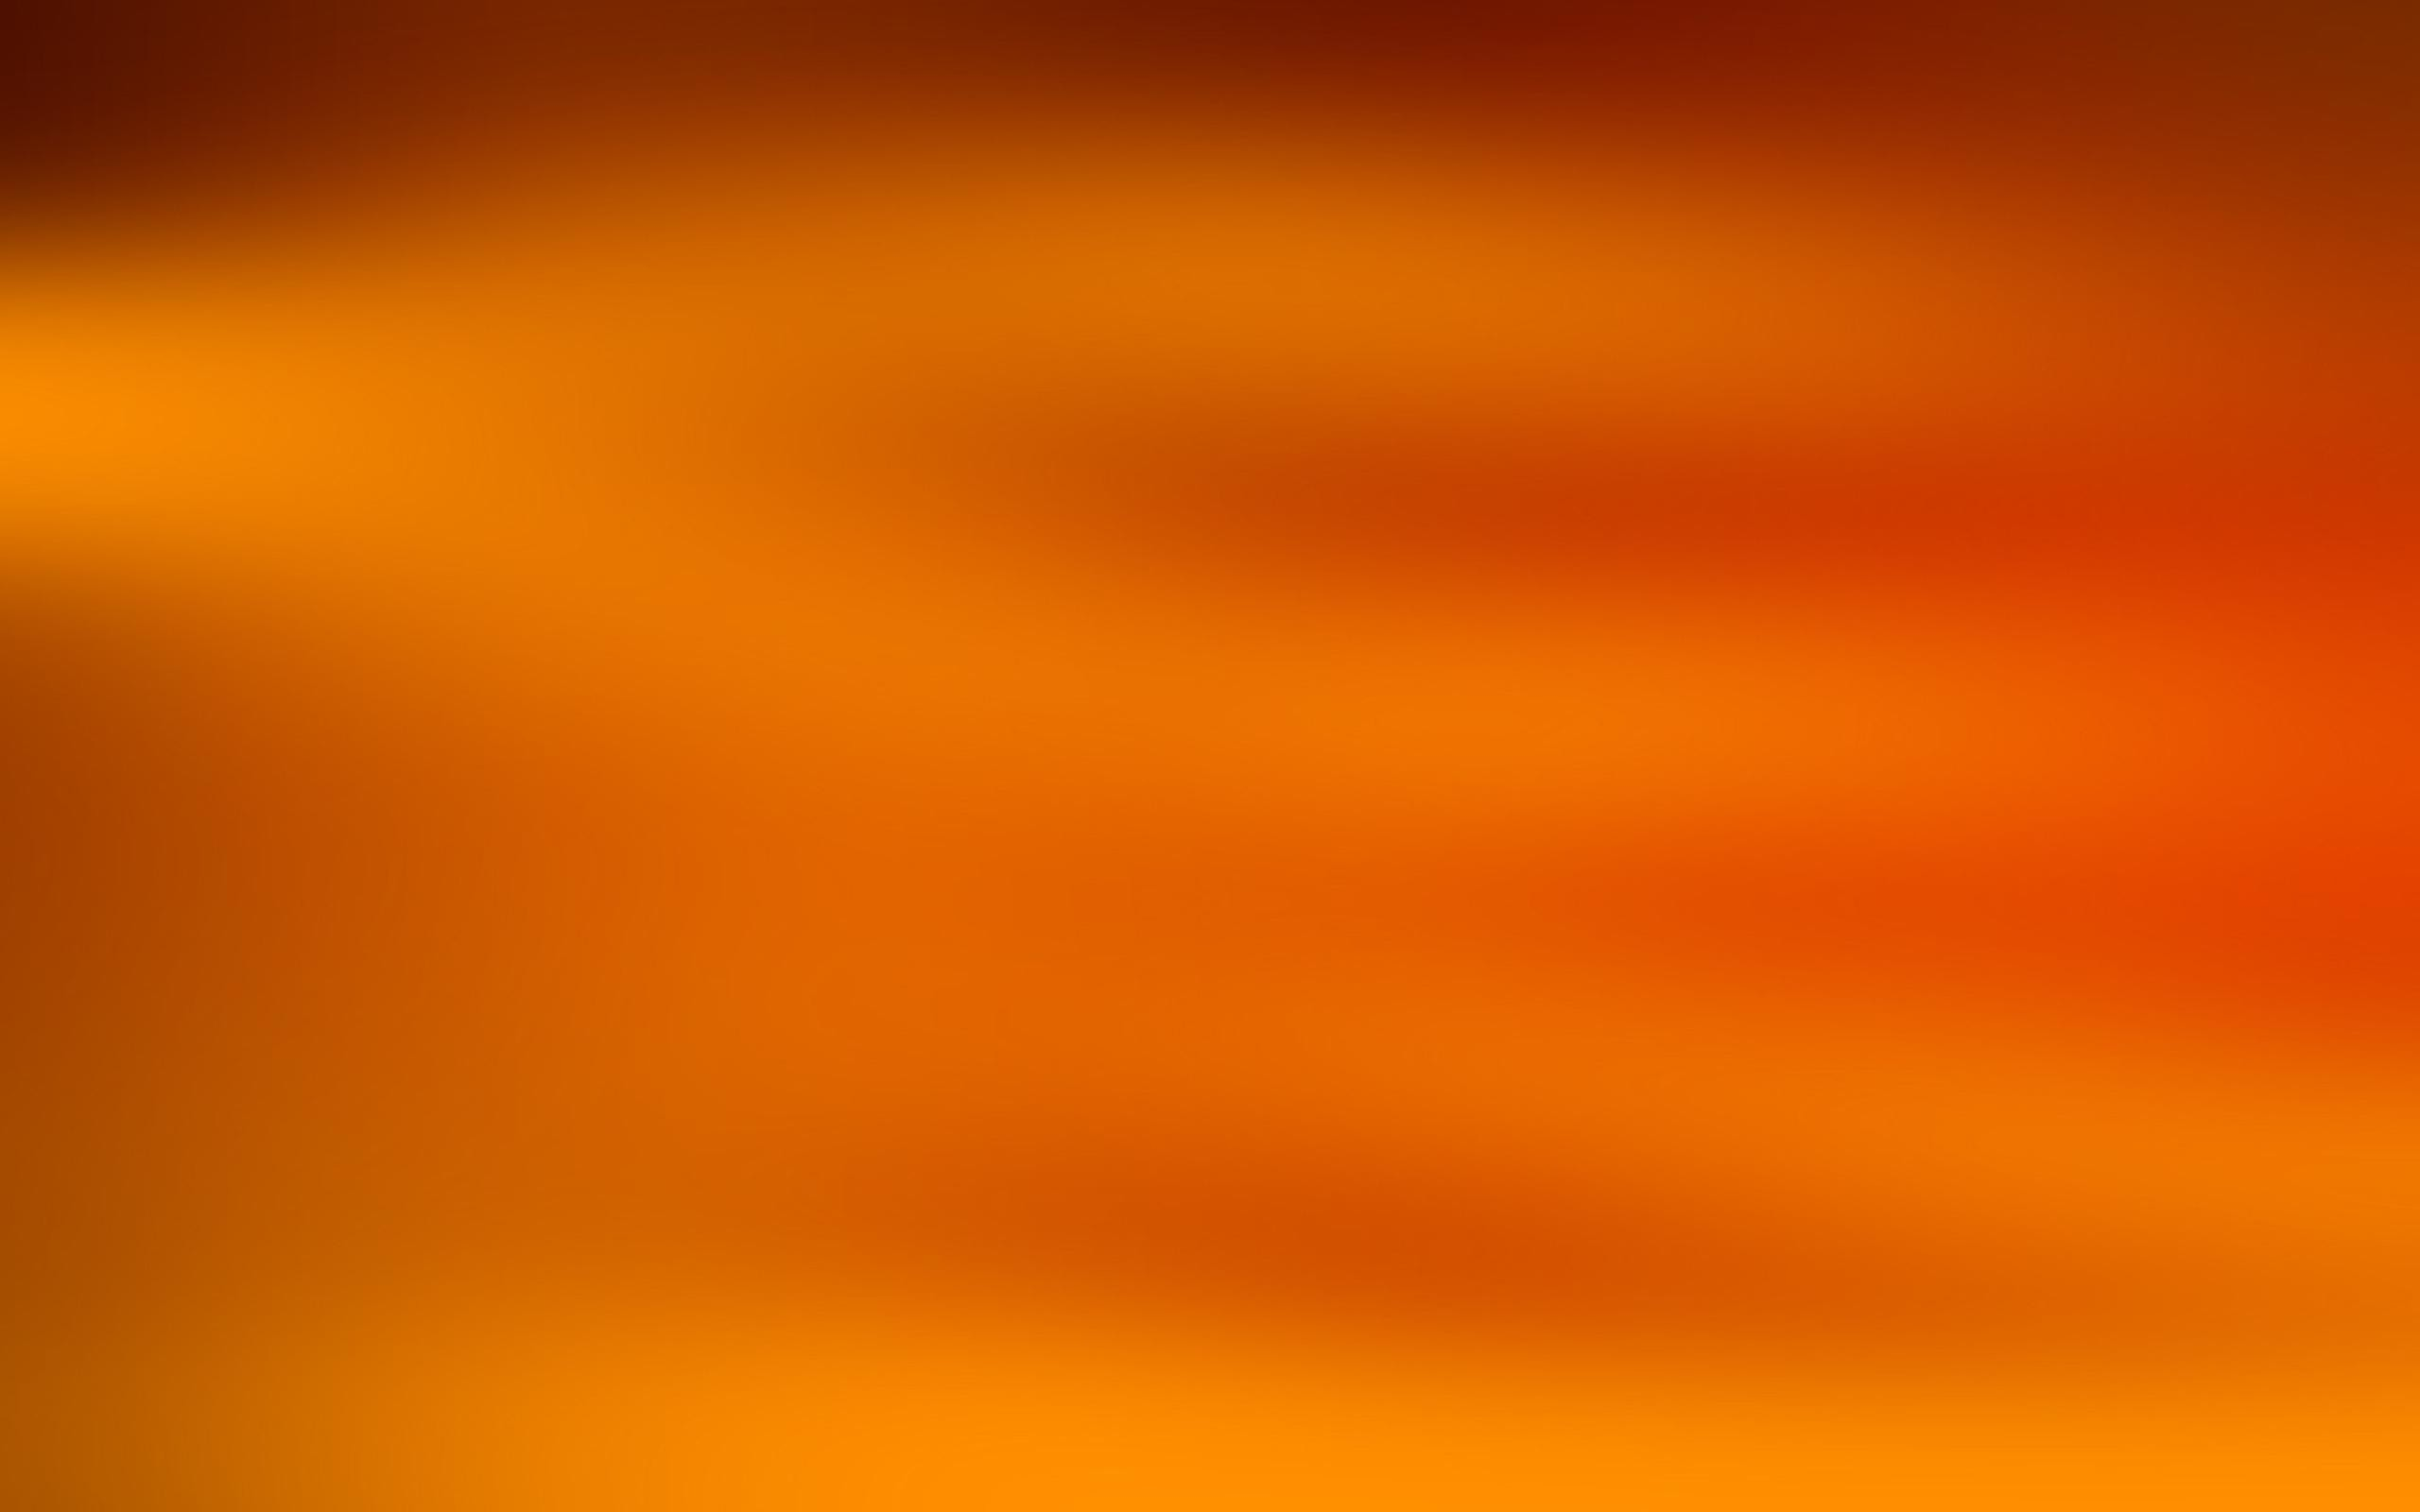 2560x1600 Orange Surface Wallpaper